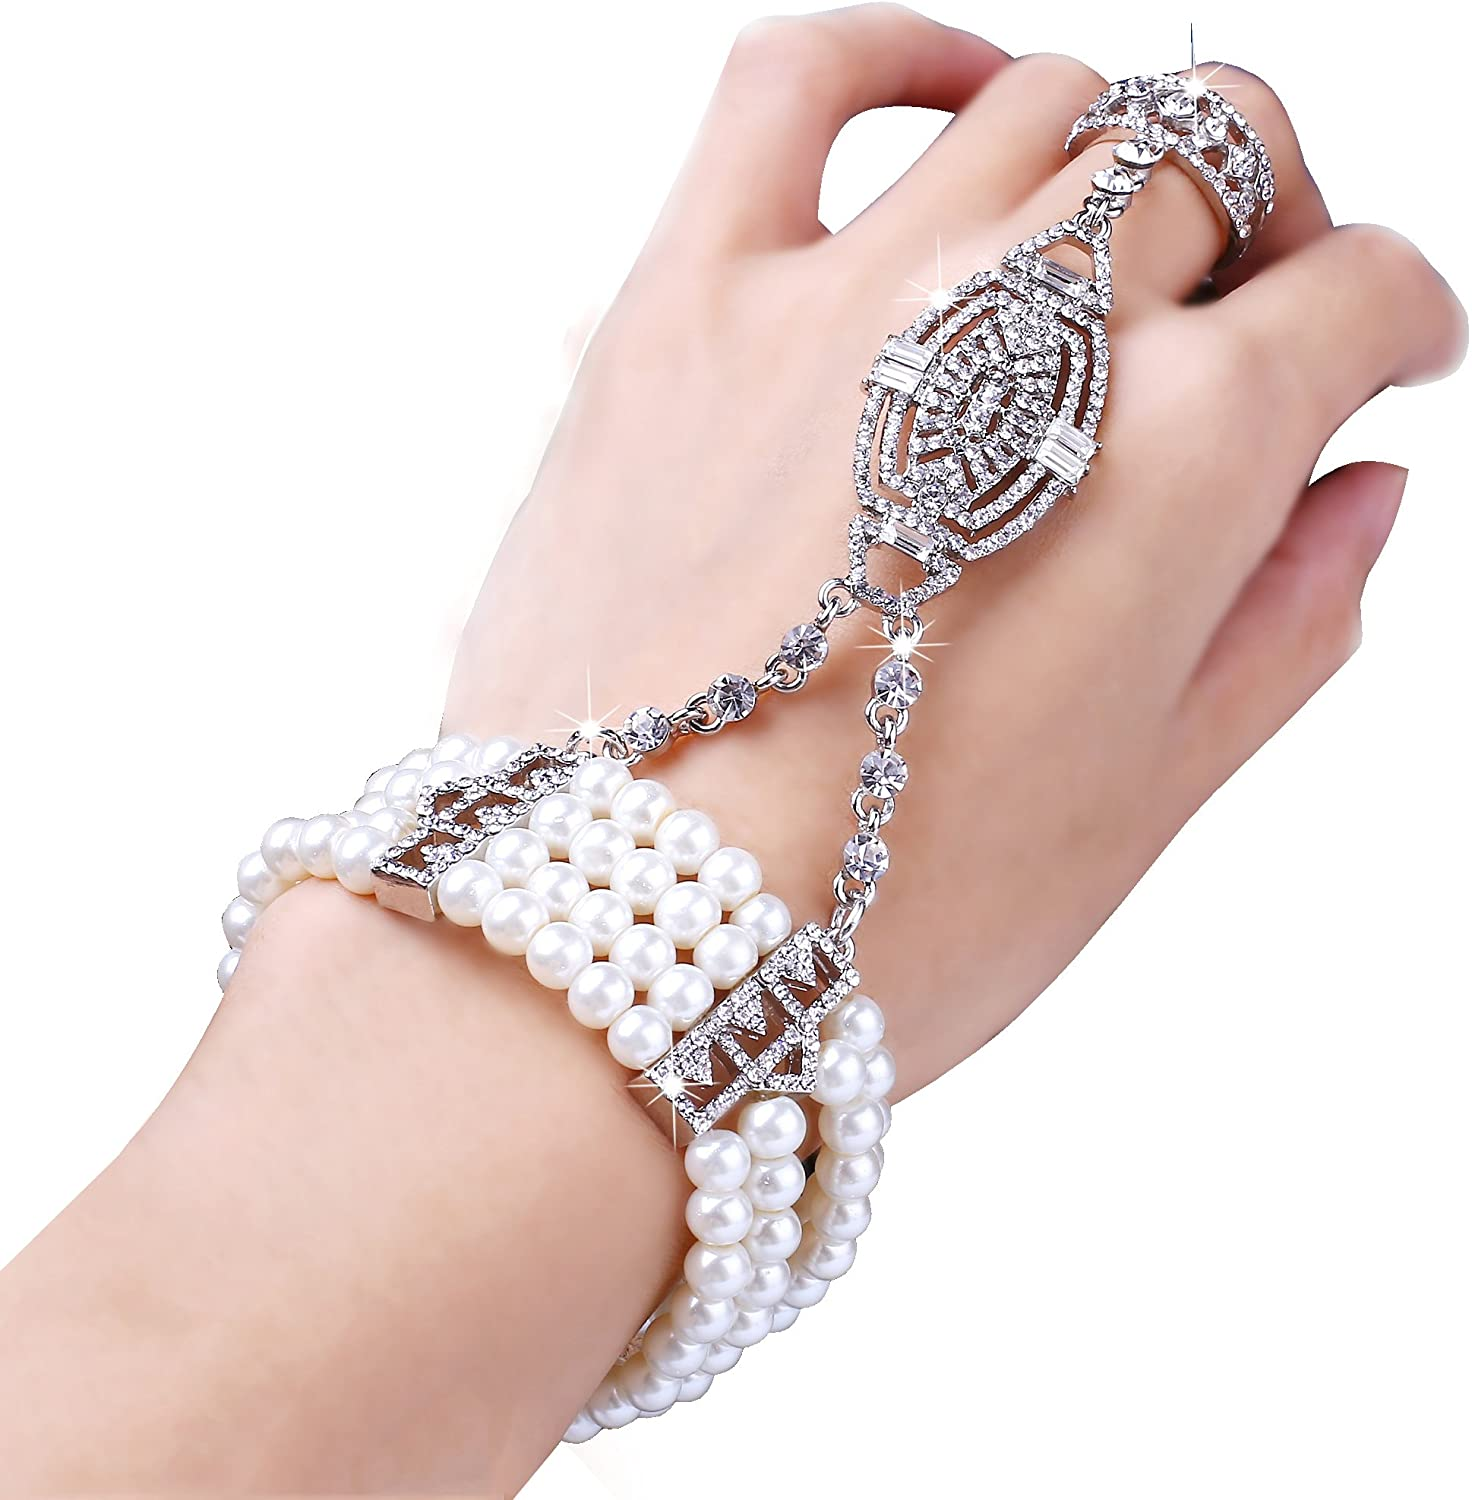 Coucoland 1920s Flapper Bracelet Ring Set Roaring 20s The Great Gatsby Austrian Crystals Imitation Pearl Bracelet Accessory